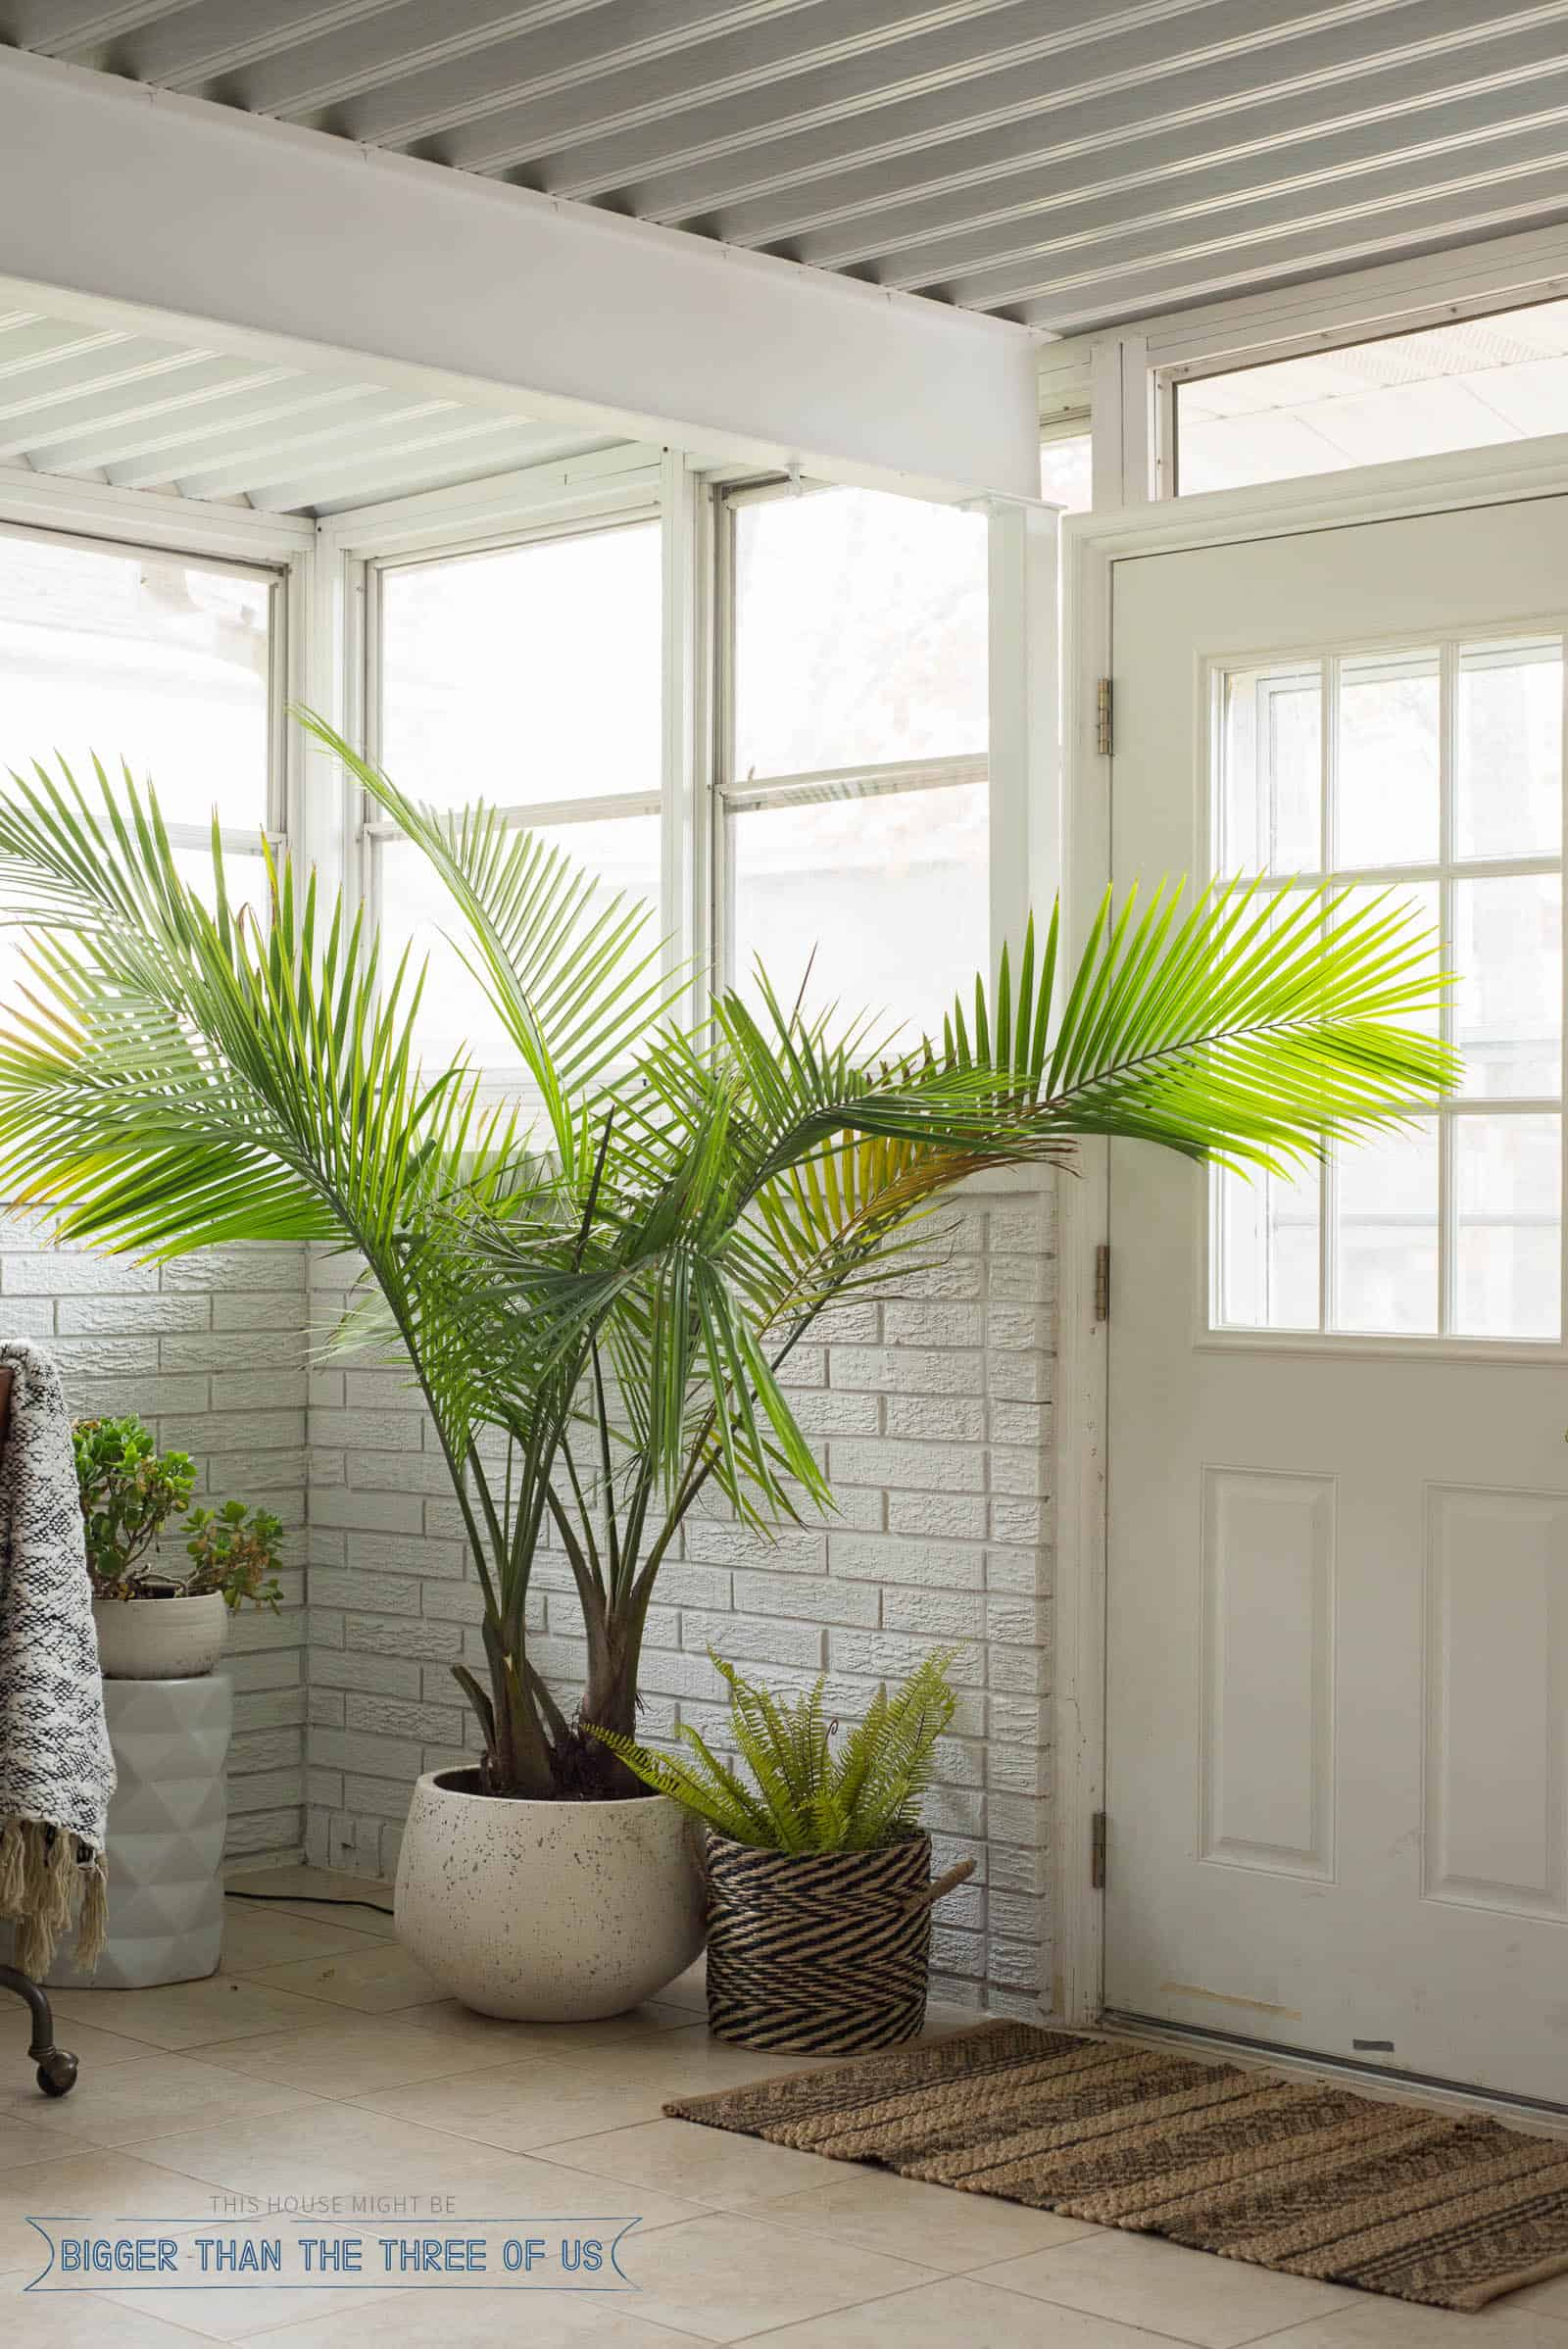 White Painted Brick in sunroom corner by door with large palm tree and a small fern in a black and white basket.